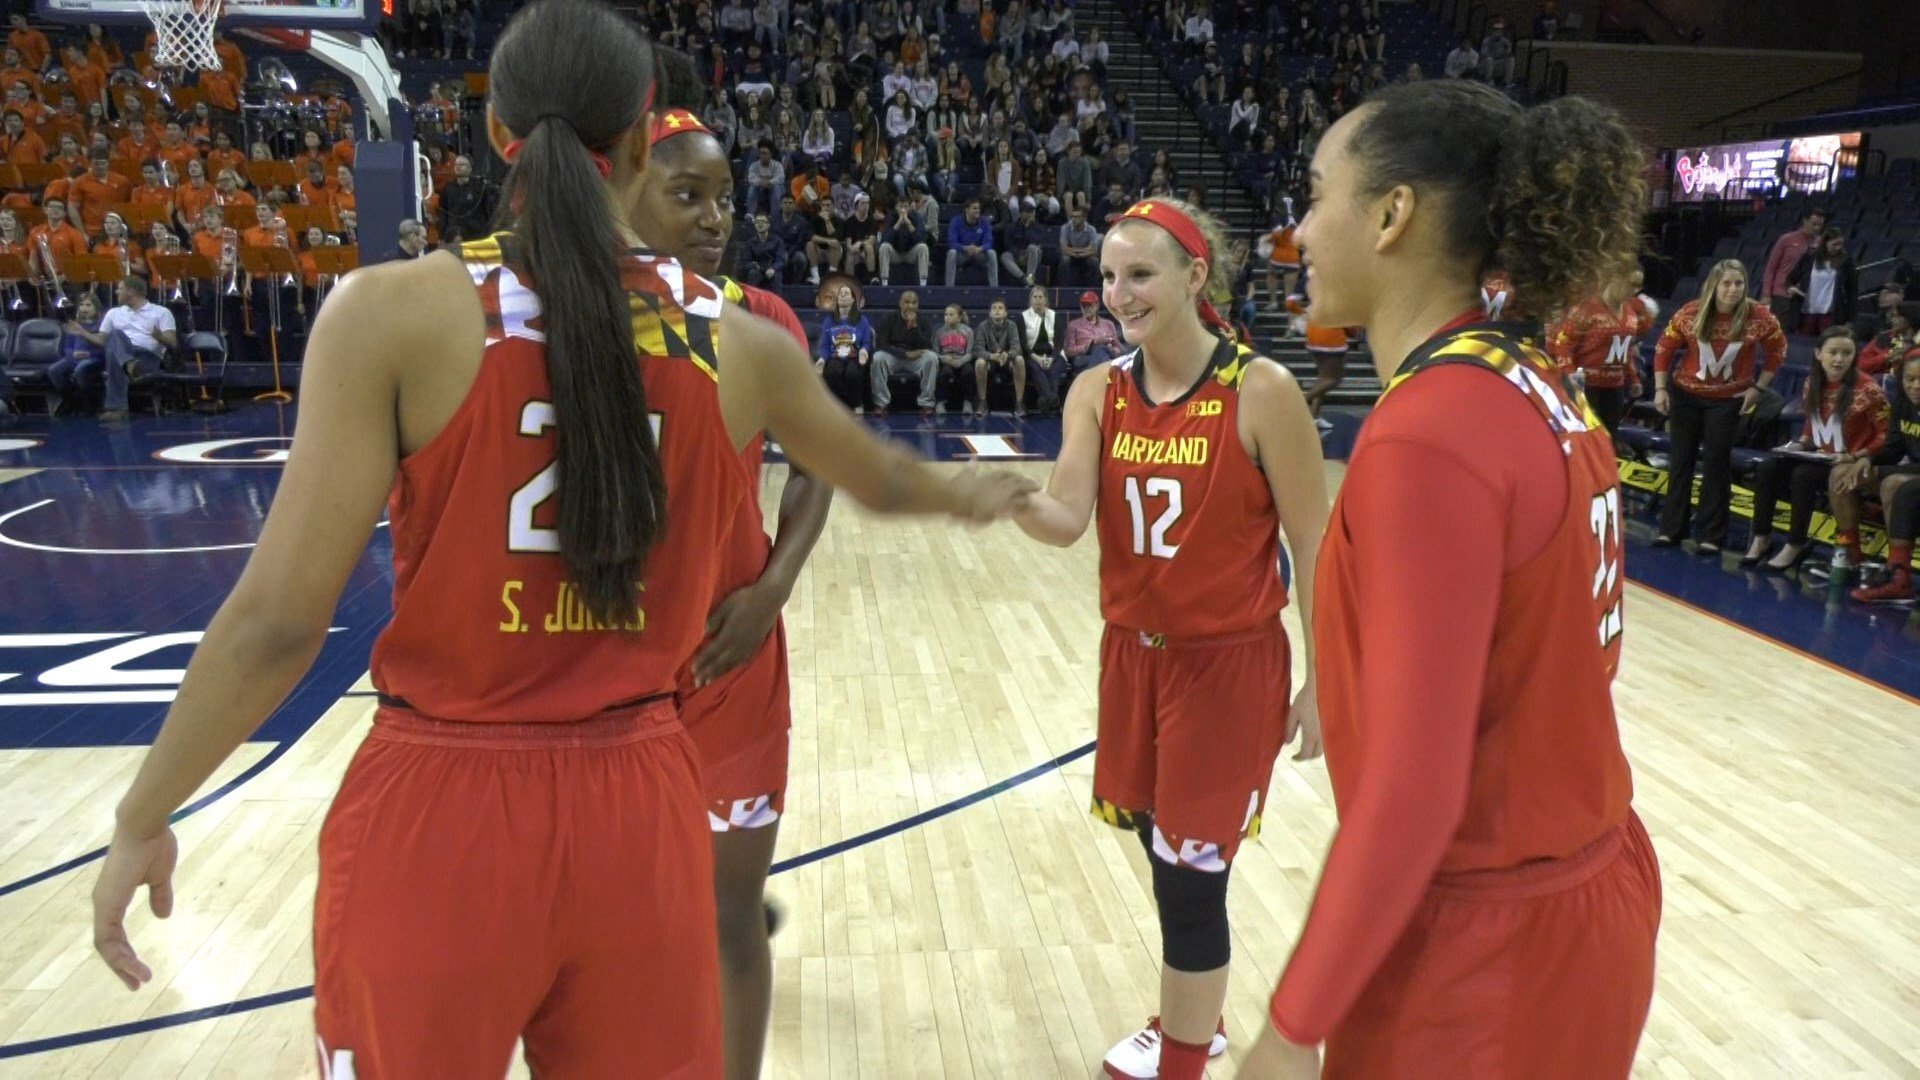 Maryland and Virginia were playing for the first time since the Terps left the ACC for the Big Ten